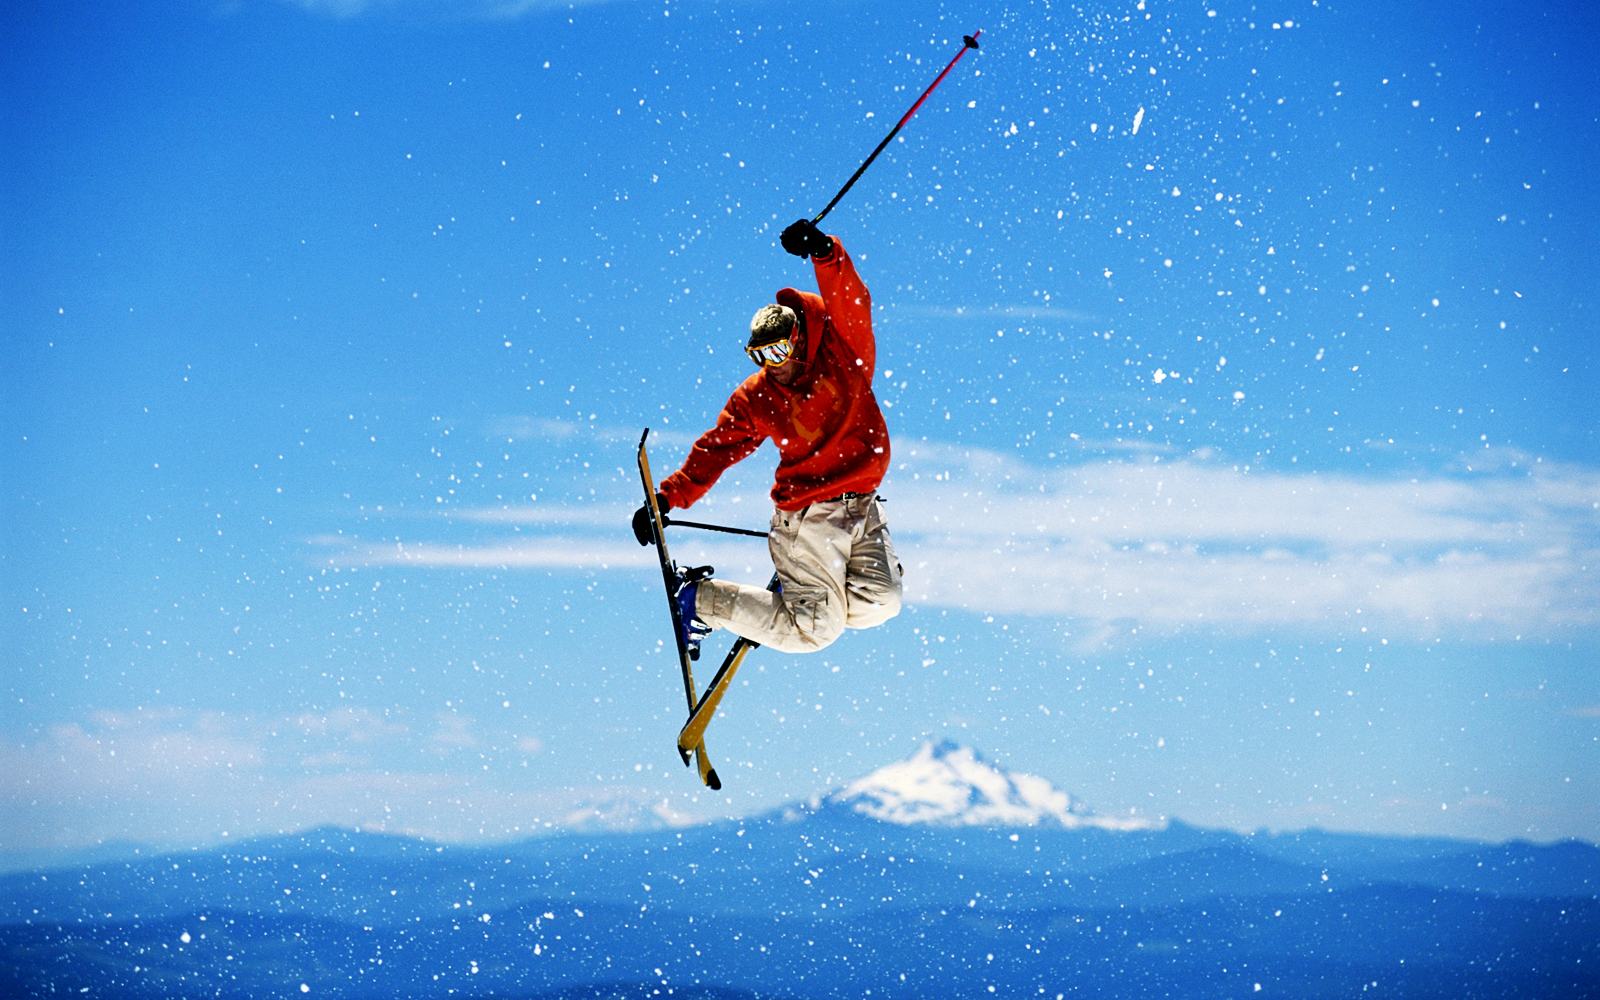 Central Wallpaper Skiing Winter Sports Hd Wallpapers